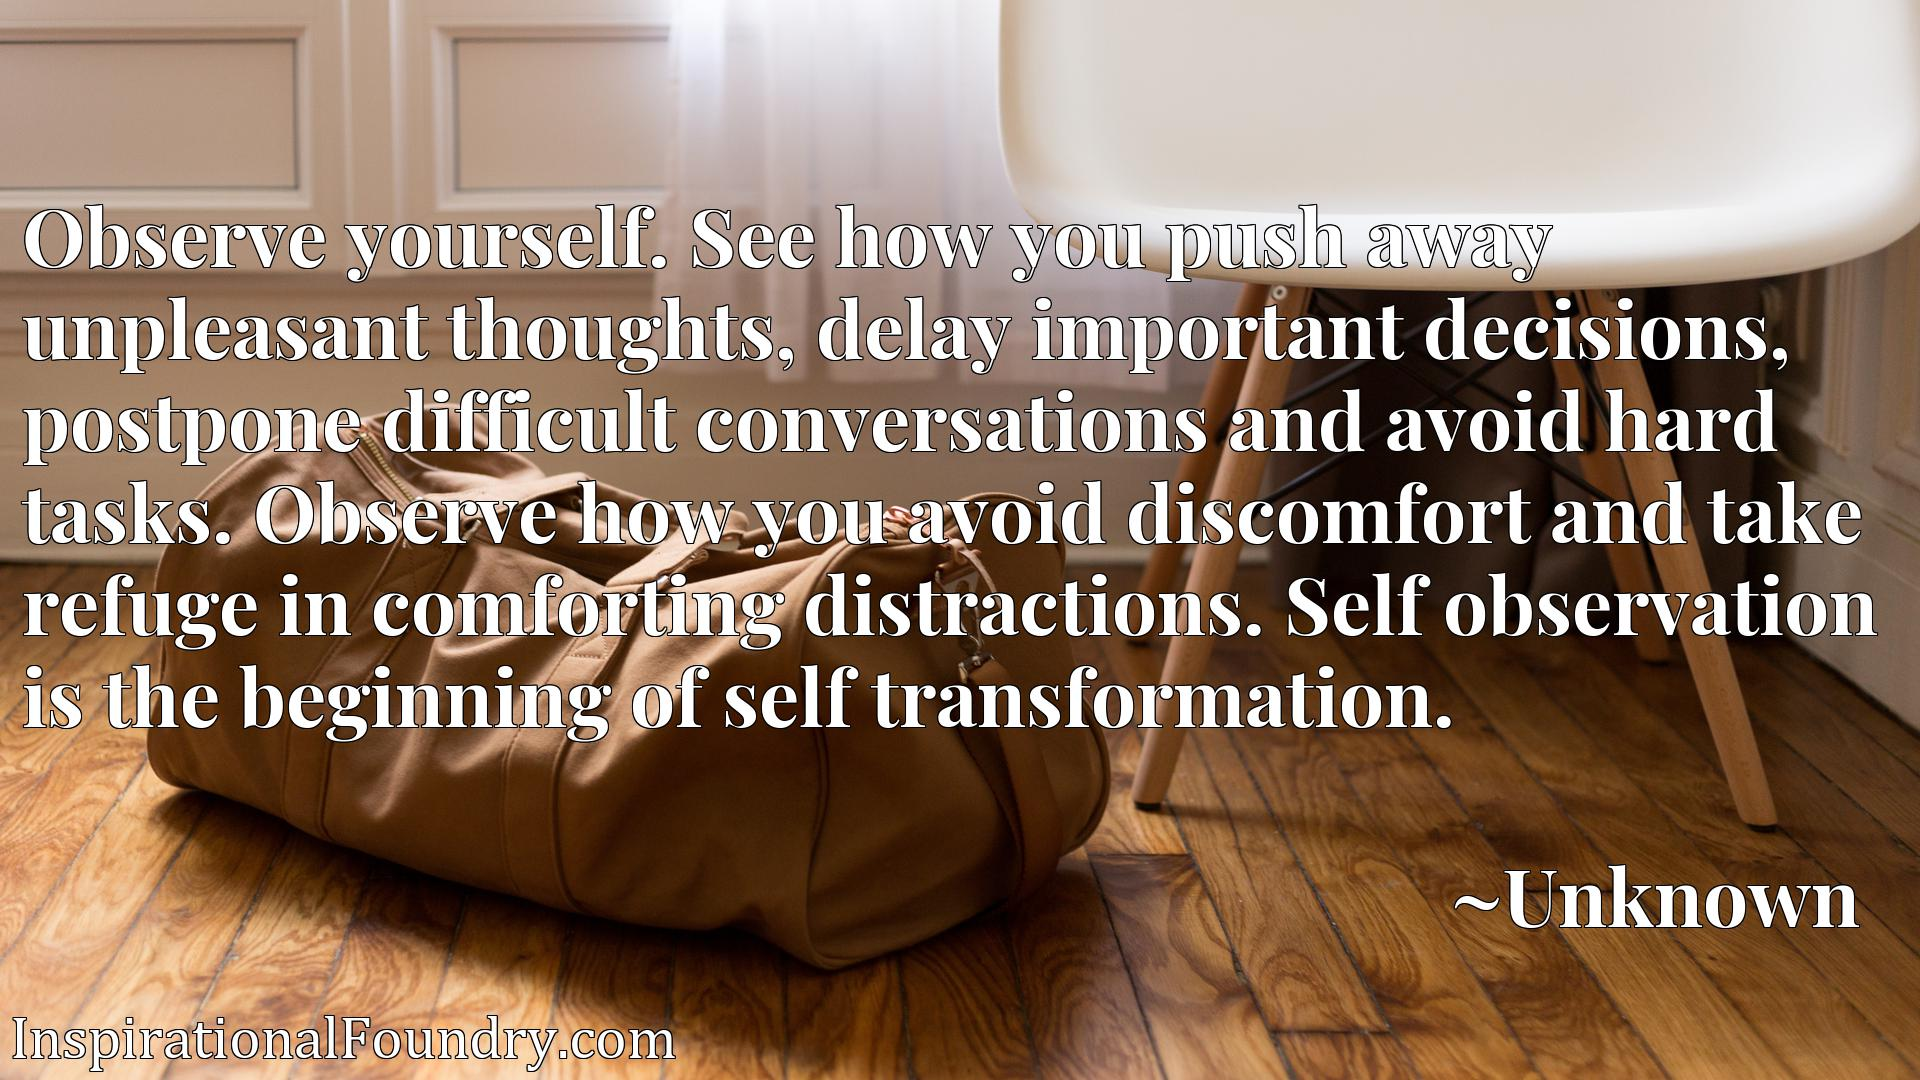 Observe yourself. See how you push away unpleasant thoughts, delay important decisions, postpone difficult conversations and avoid hard tasks. Observe how you avoid discomfort and take refuge in comforting distractions. Self observation is the beginning of self transformation.